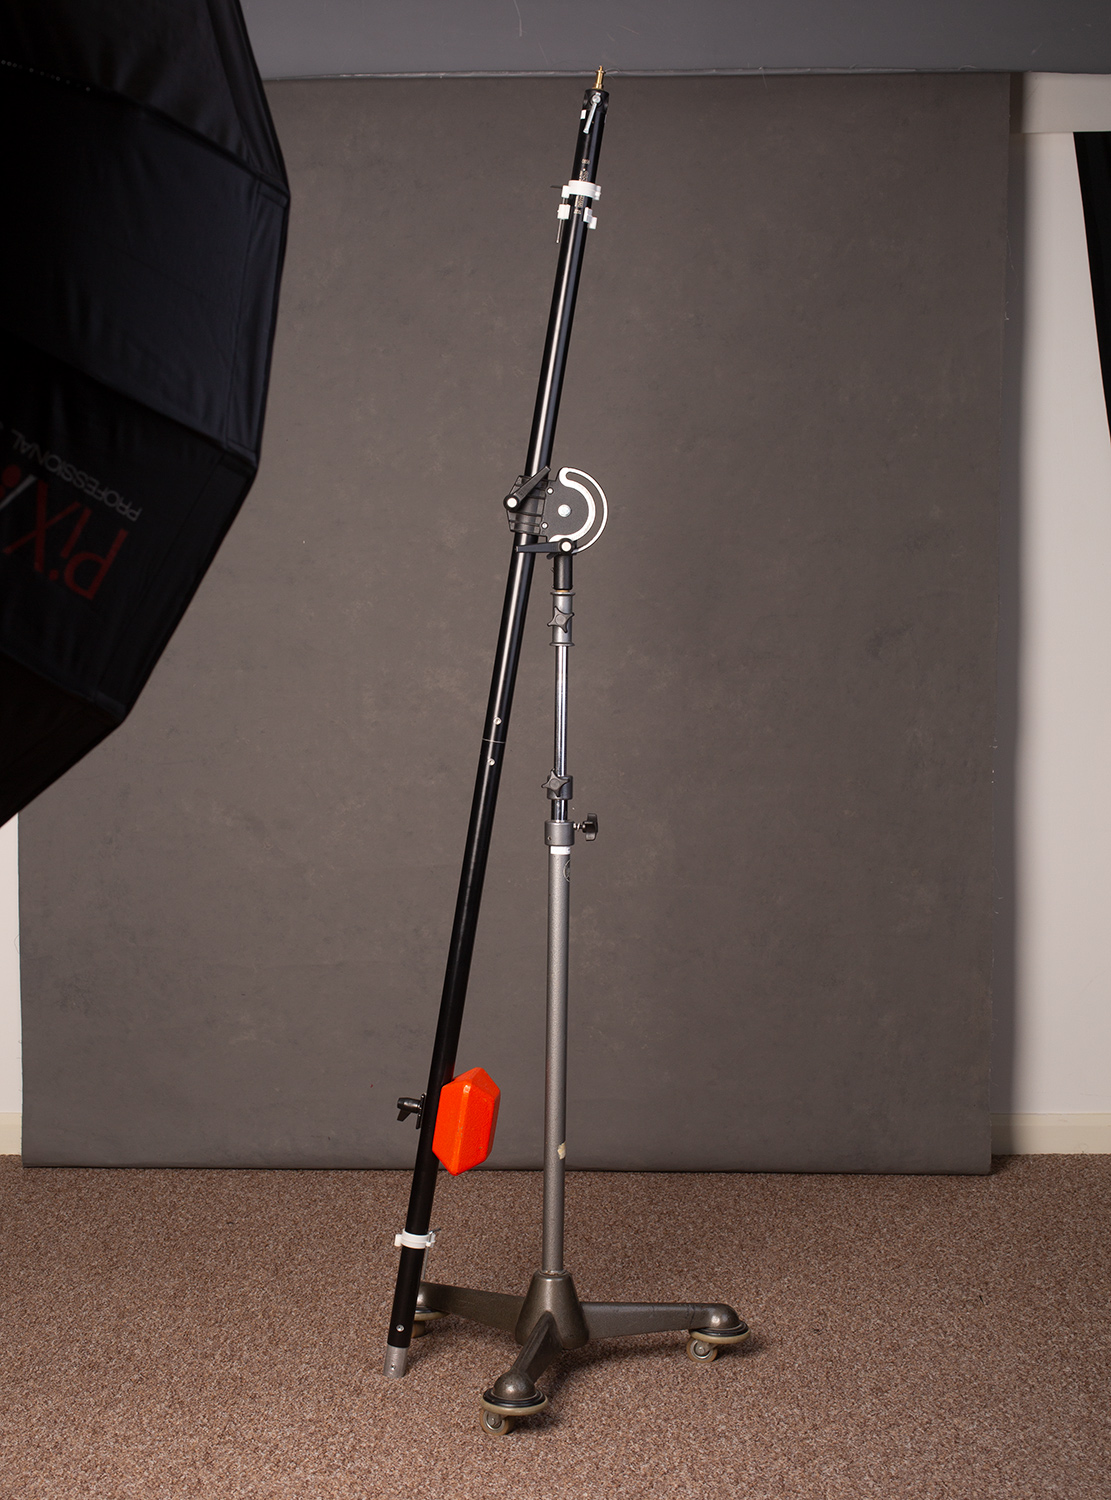 Image: This image shows a boom arm attached to a lighting stand on a dolly. It's a fantastic a...